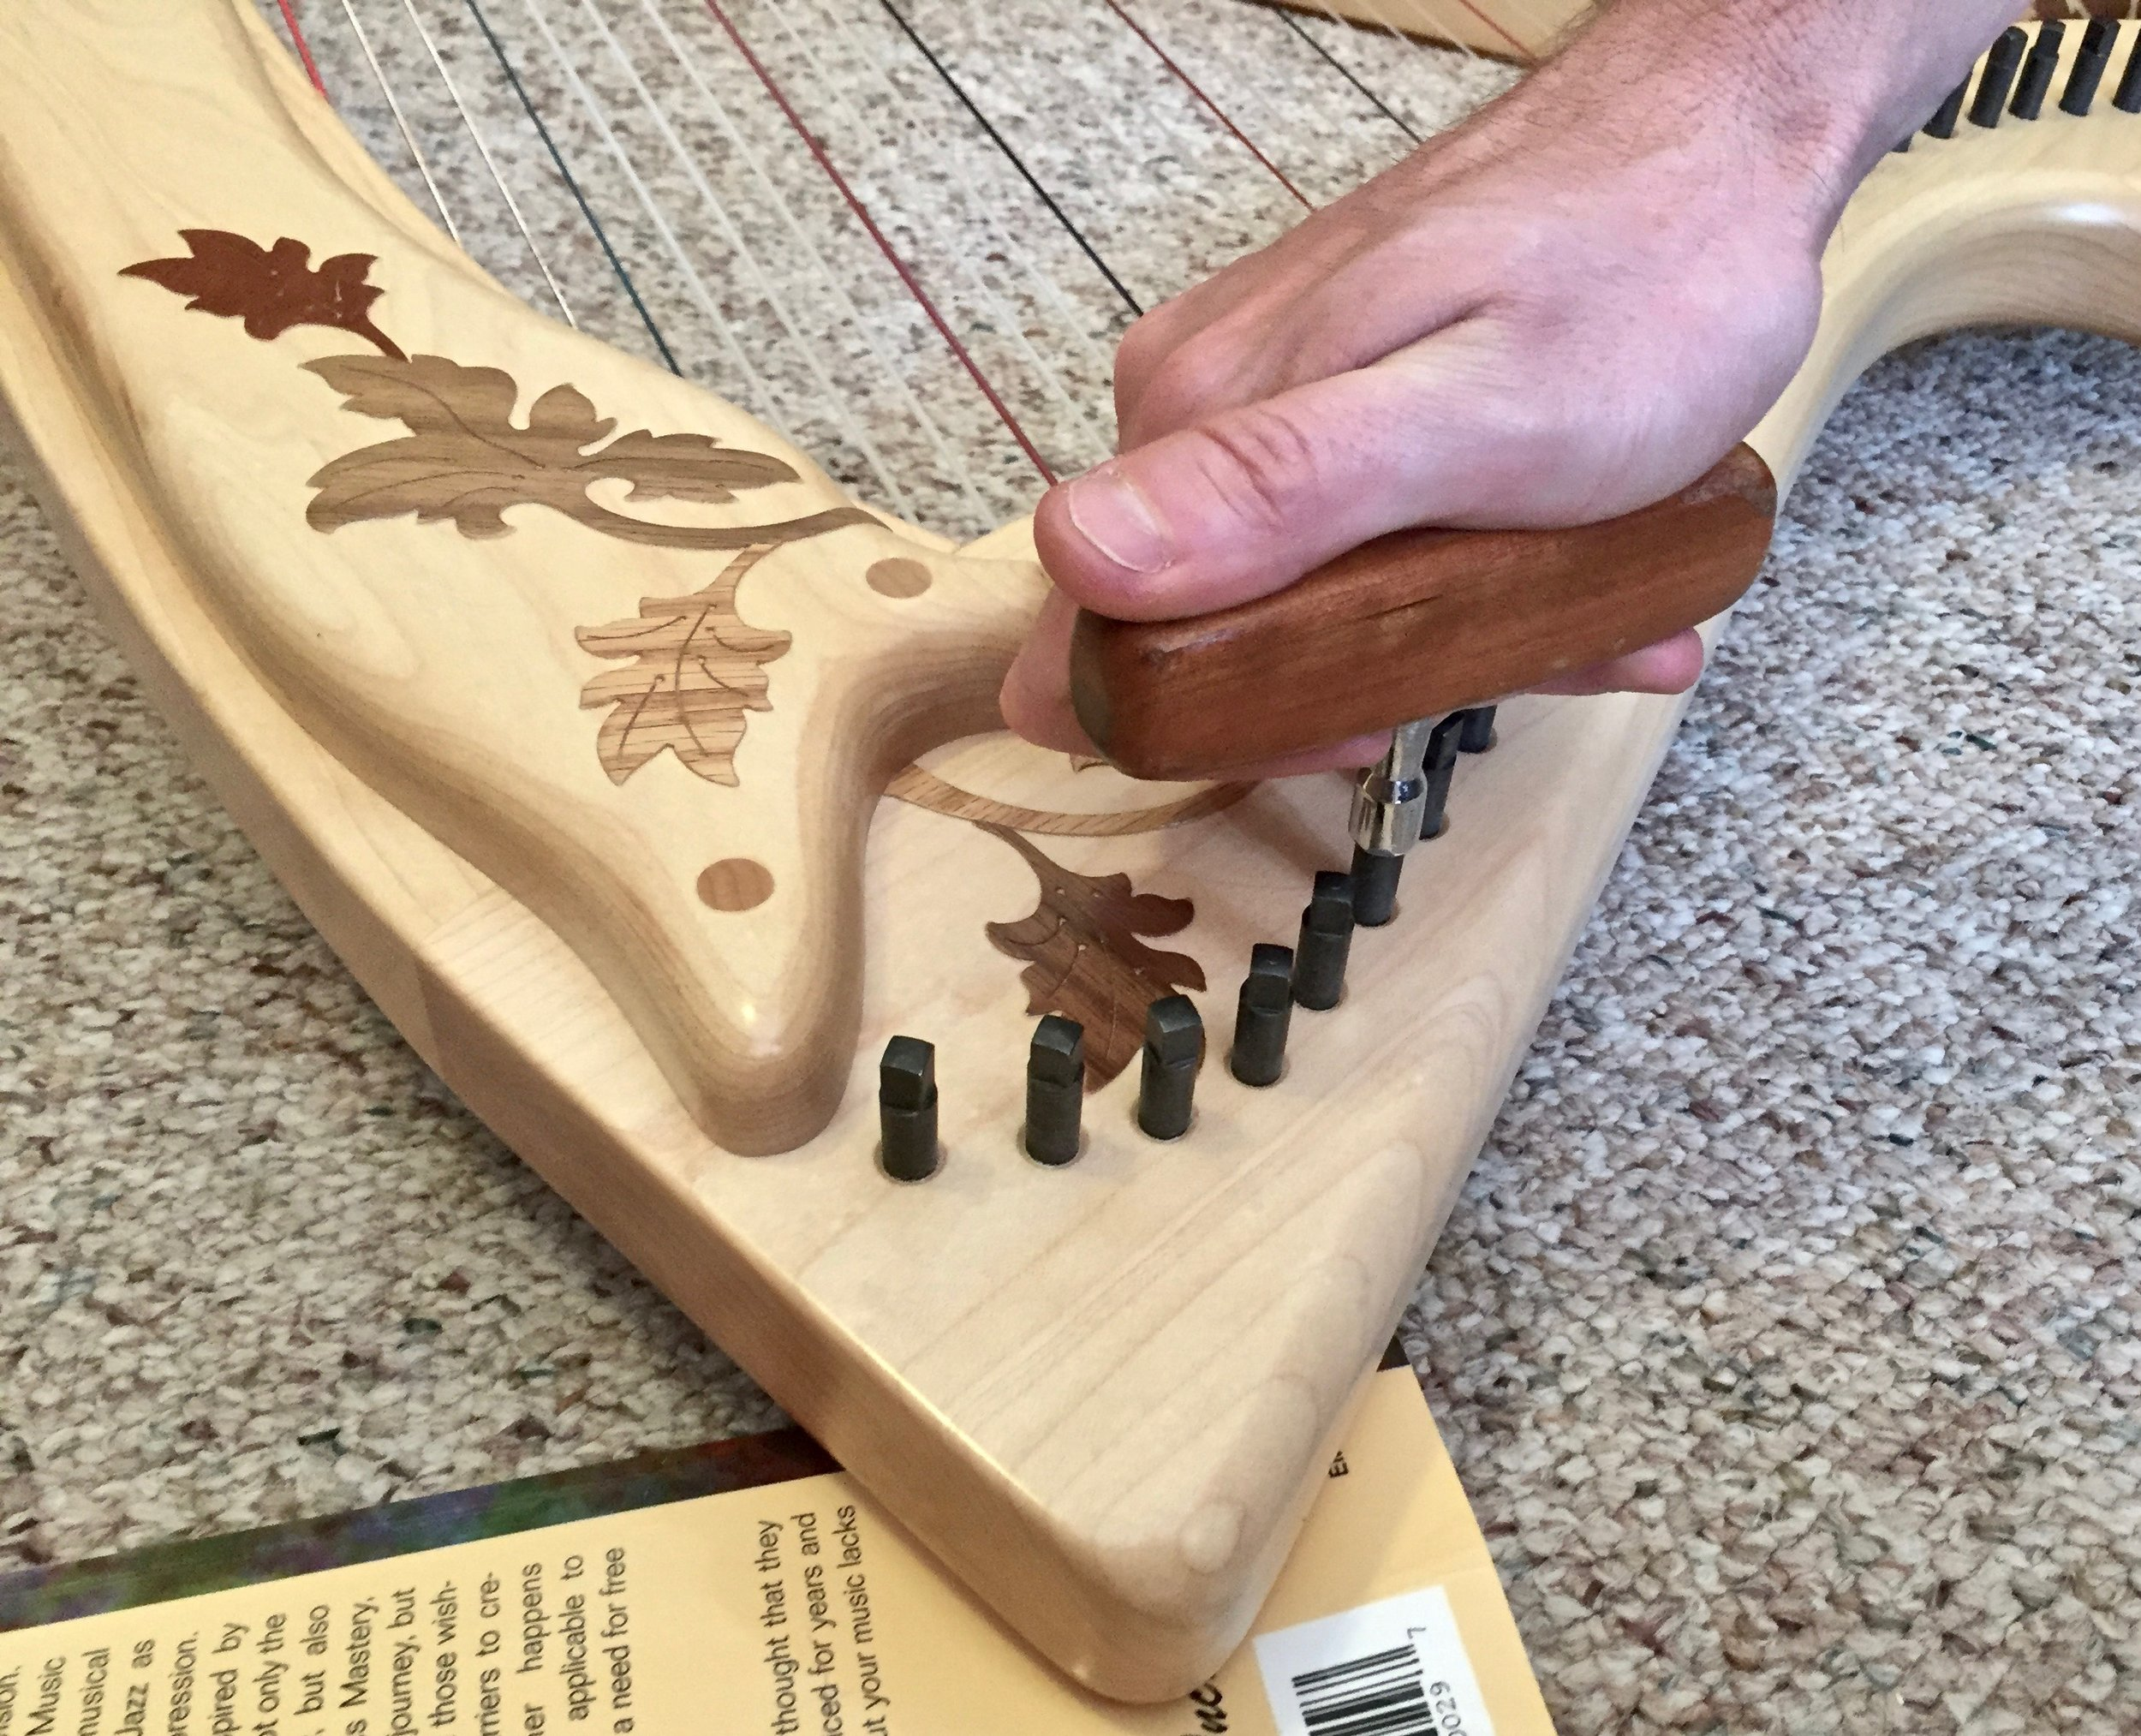 Lay your harp, string side down, with the point on a book and then firmly press the loose pin back in with your tuning wrench.